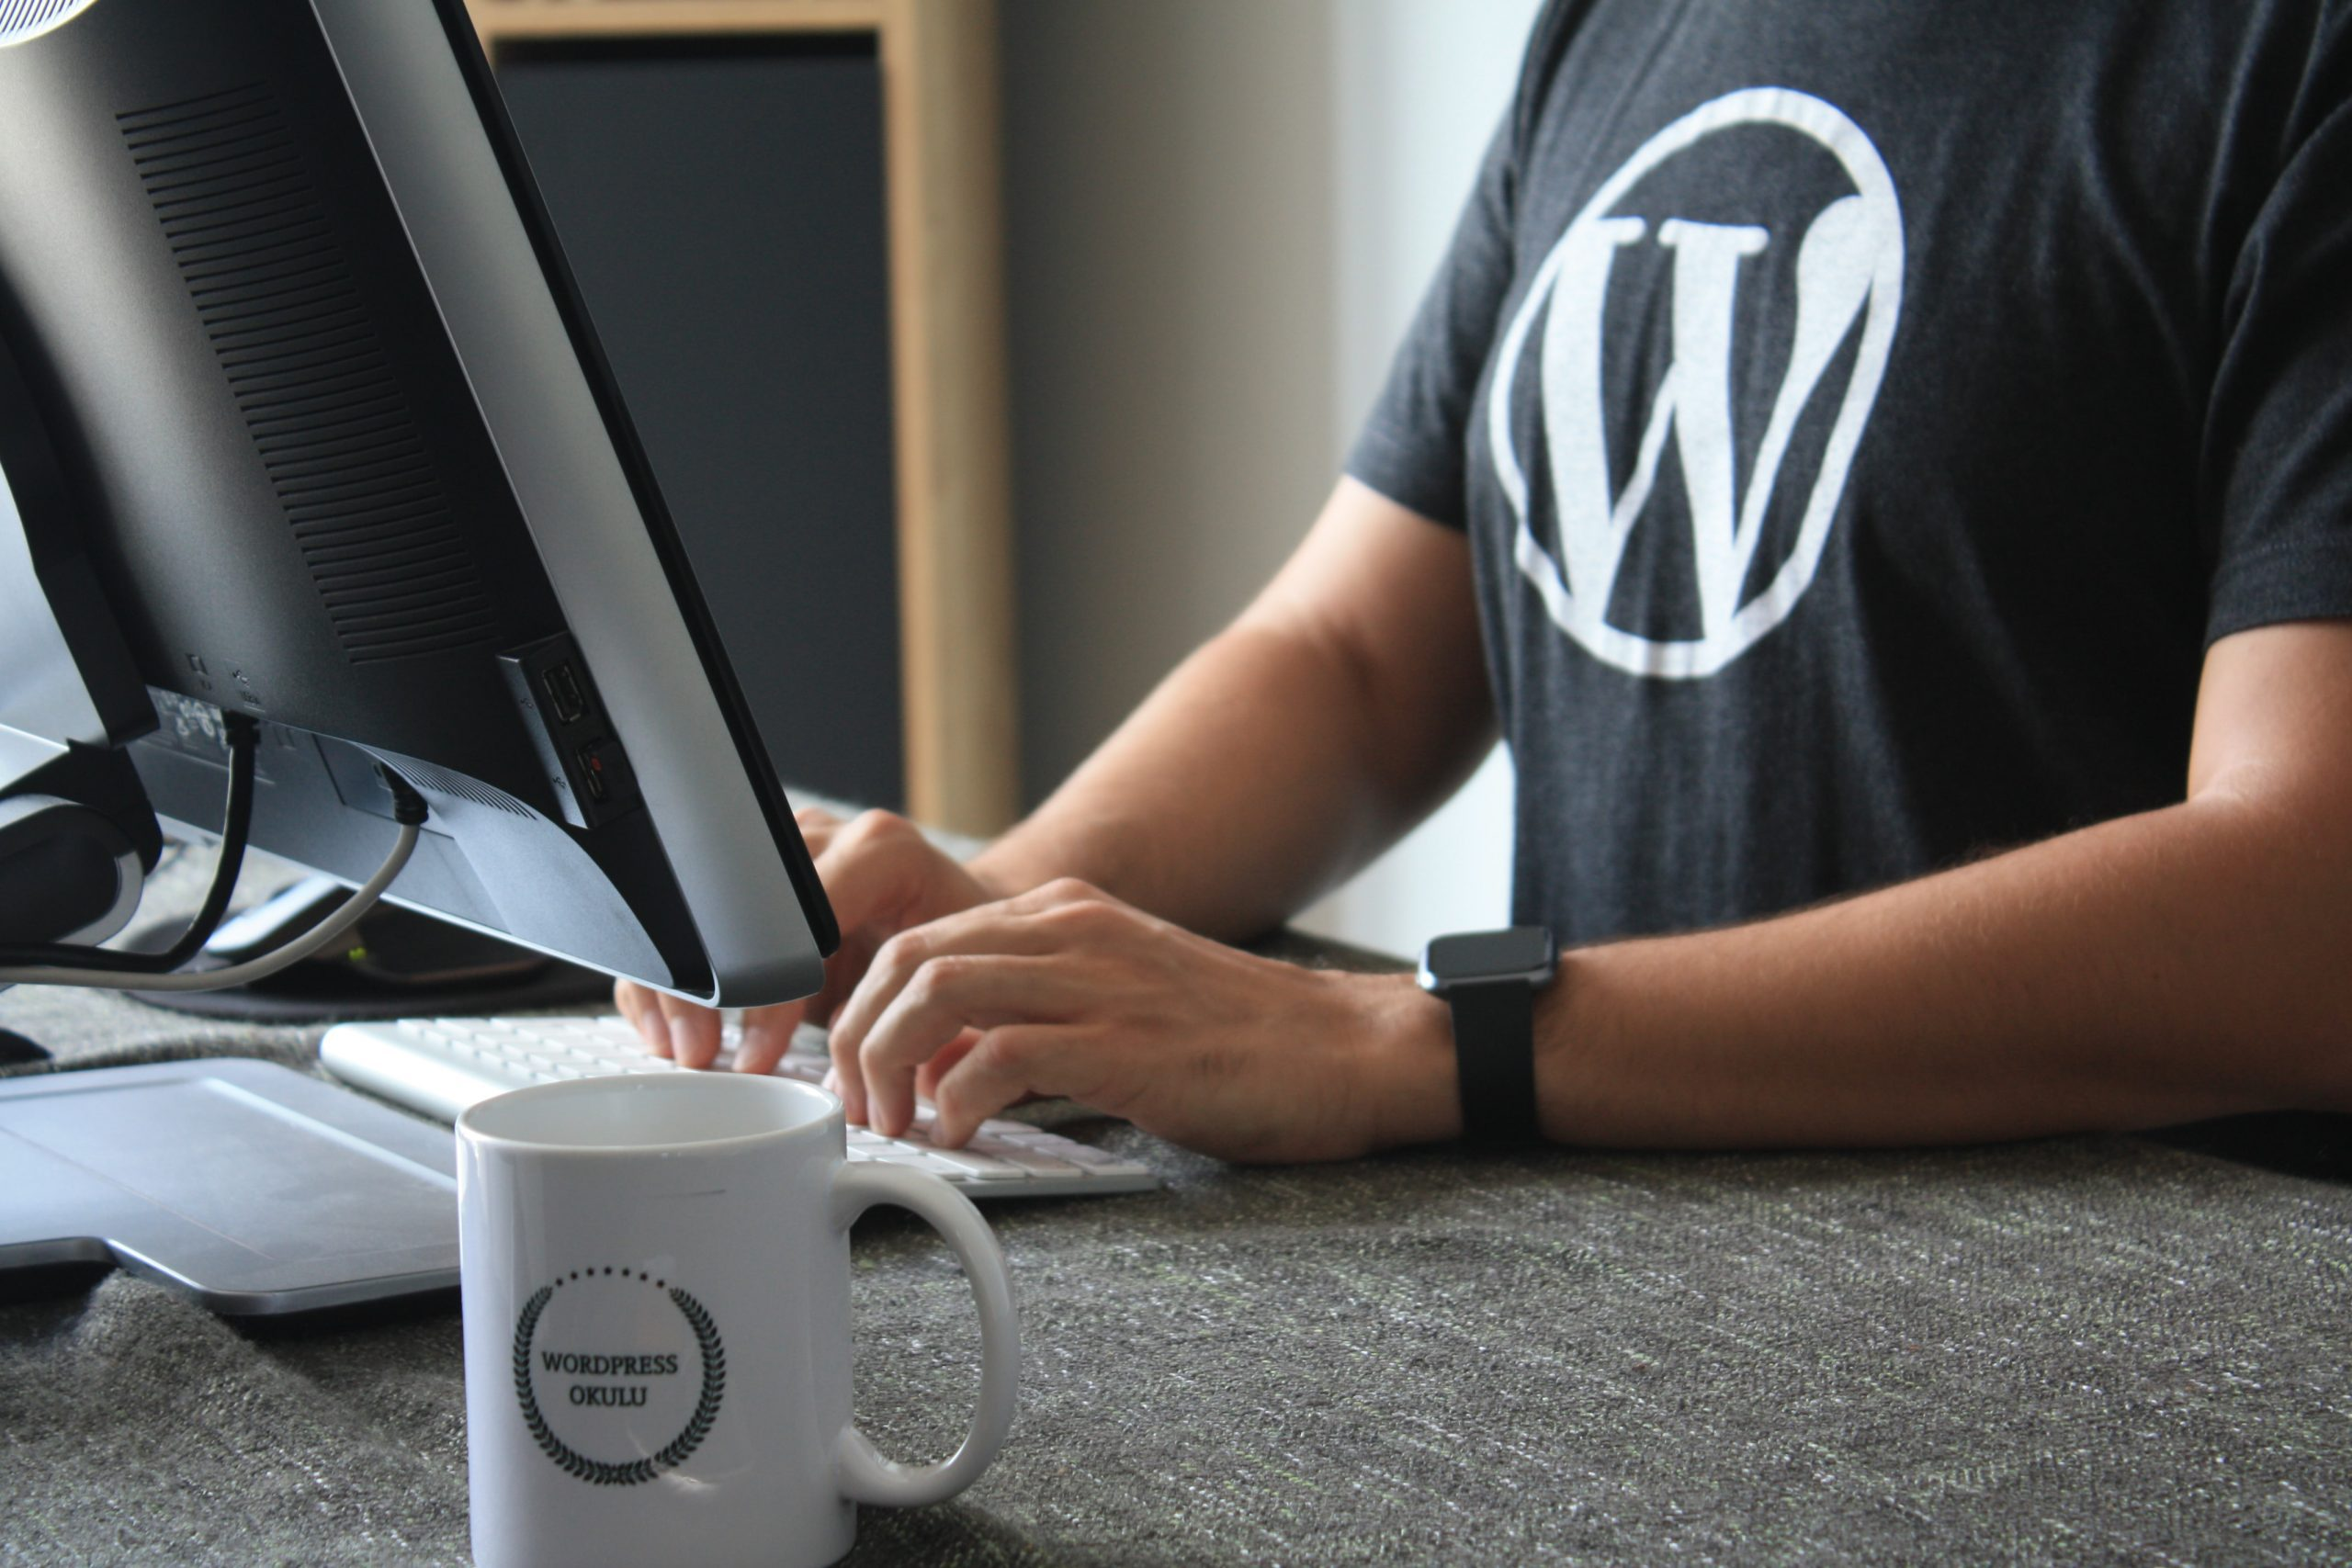 How To Install WordPress Onto Your Hosting